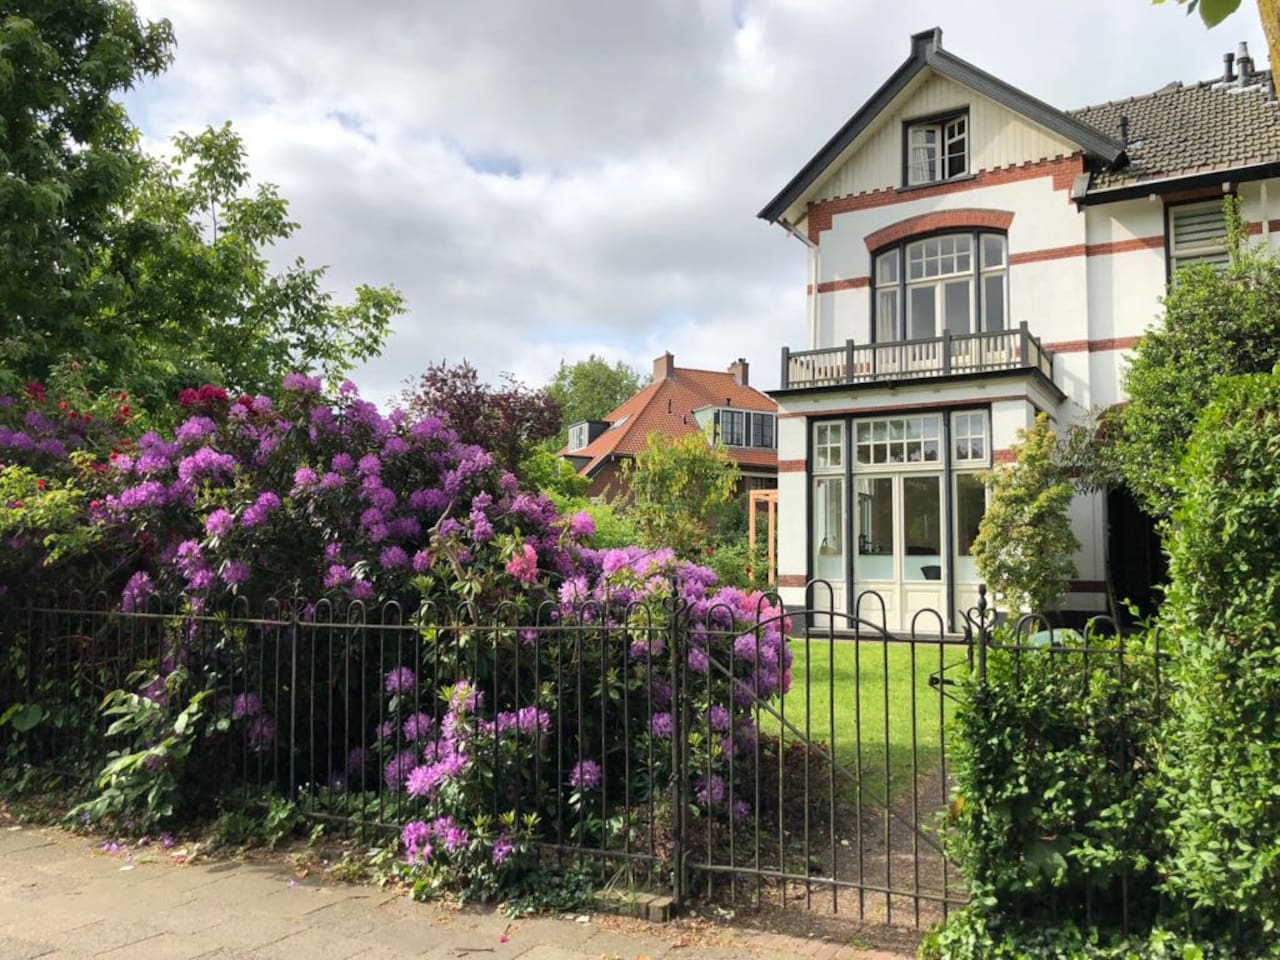 Sunny family home with delicious garden close to Amsterdam for 4-6 people. Recently fully renovated. Within 20 minutes in Amsterdam by train (walking distance) or car.